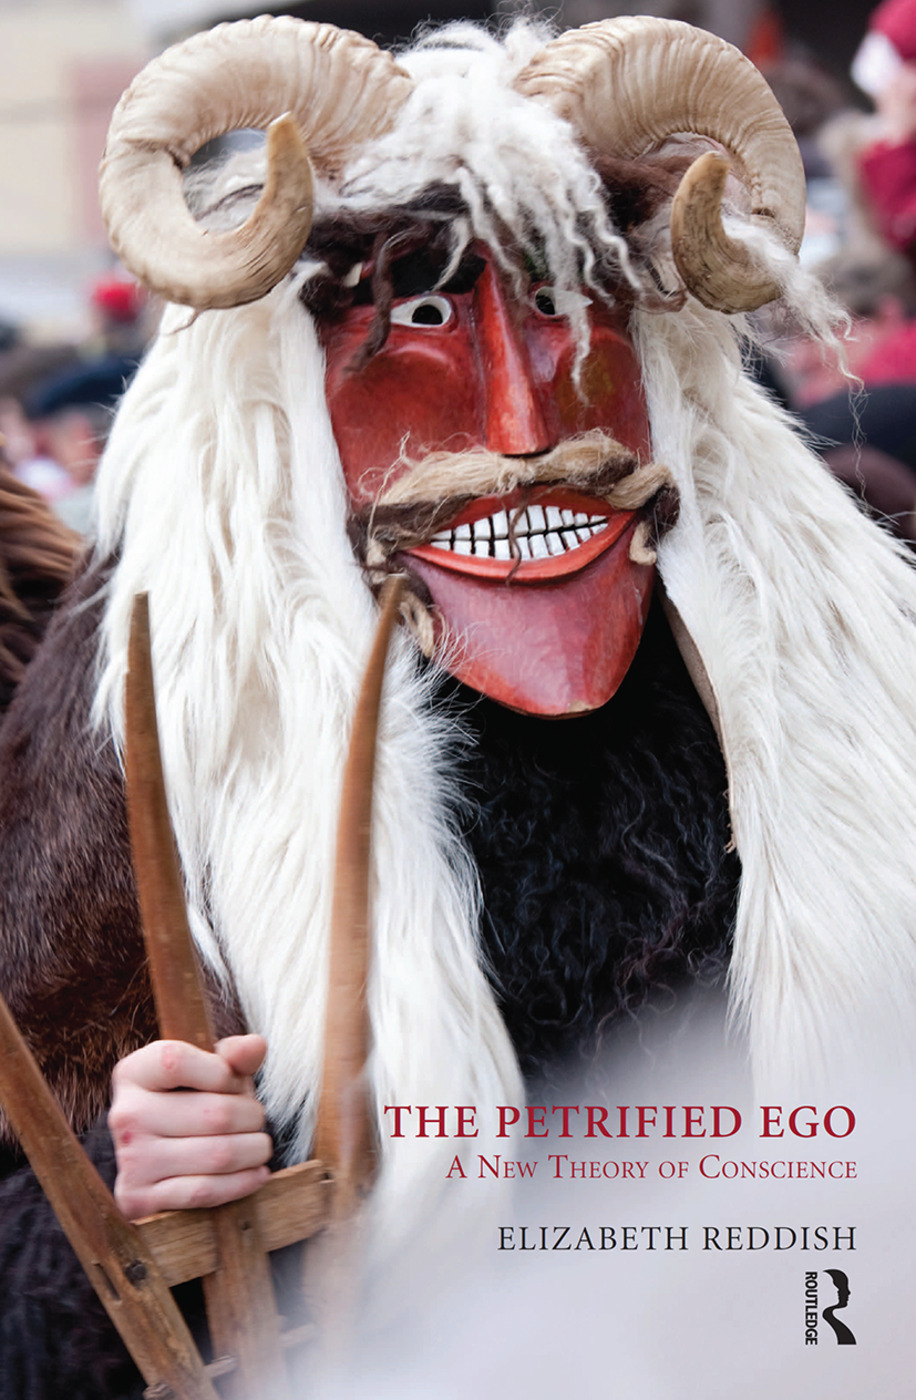 The Petrified Ego: A New Theory of Conscience book cover